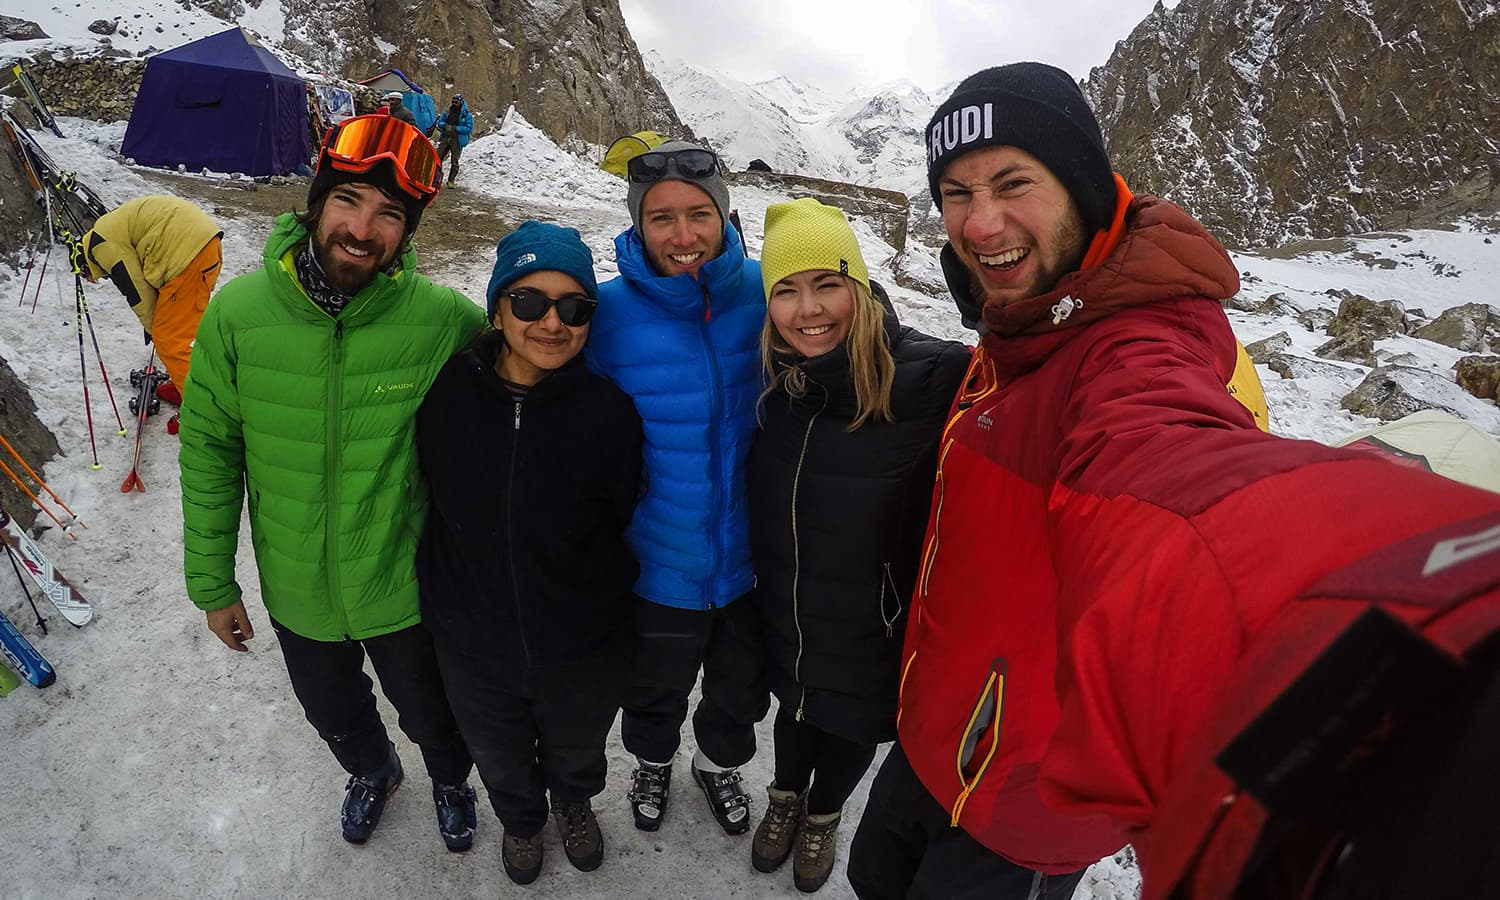 Selfie with Austrian skiing instructors Stefan and Andreas, Henriette from Norway, German photographer and filmmaker Jan. — Photo by author